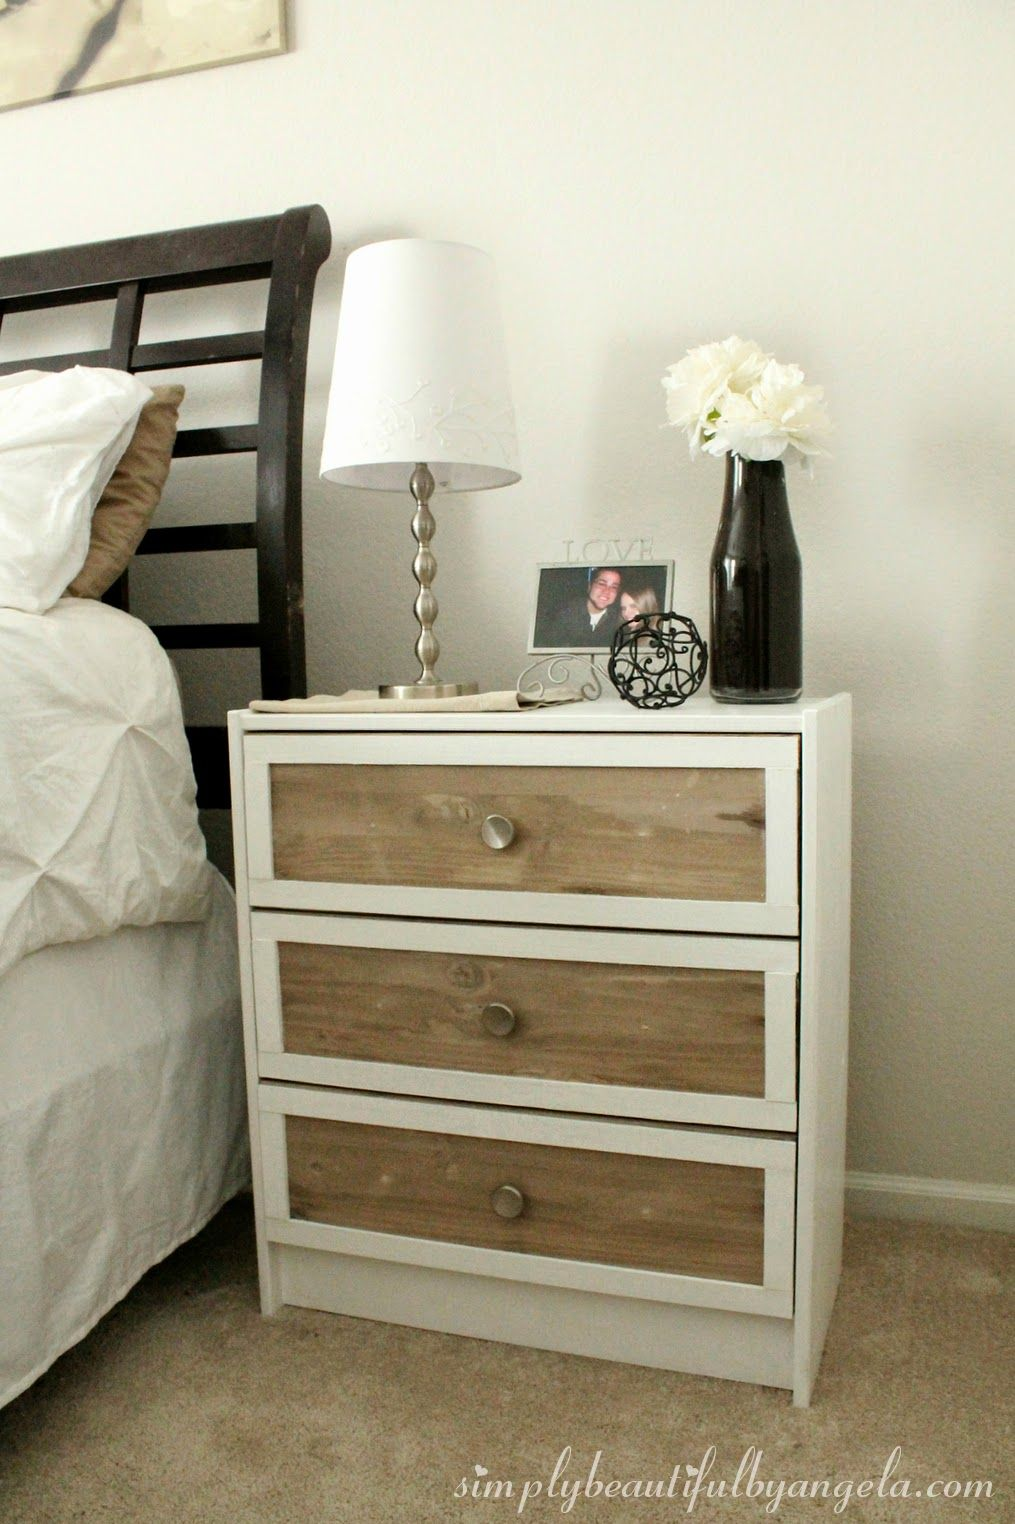 ikea rast nightstand hack good directions on how to paint and stain wood like the white frame. Black Bedroom Furniture Sets. Home Design Ideas